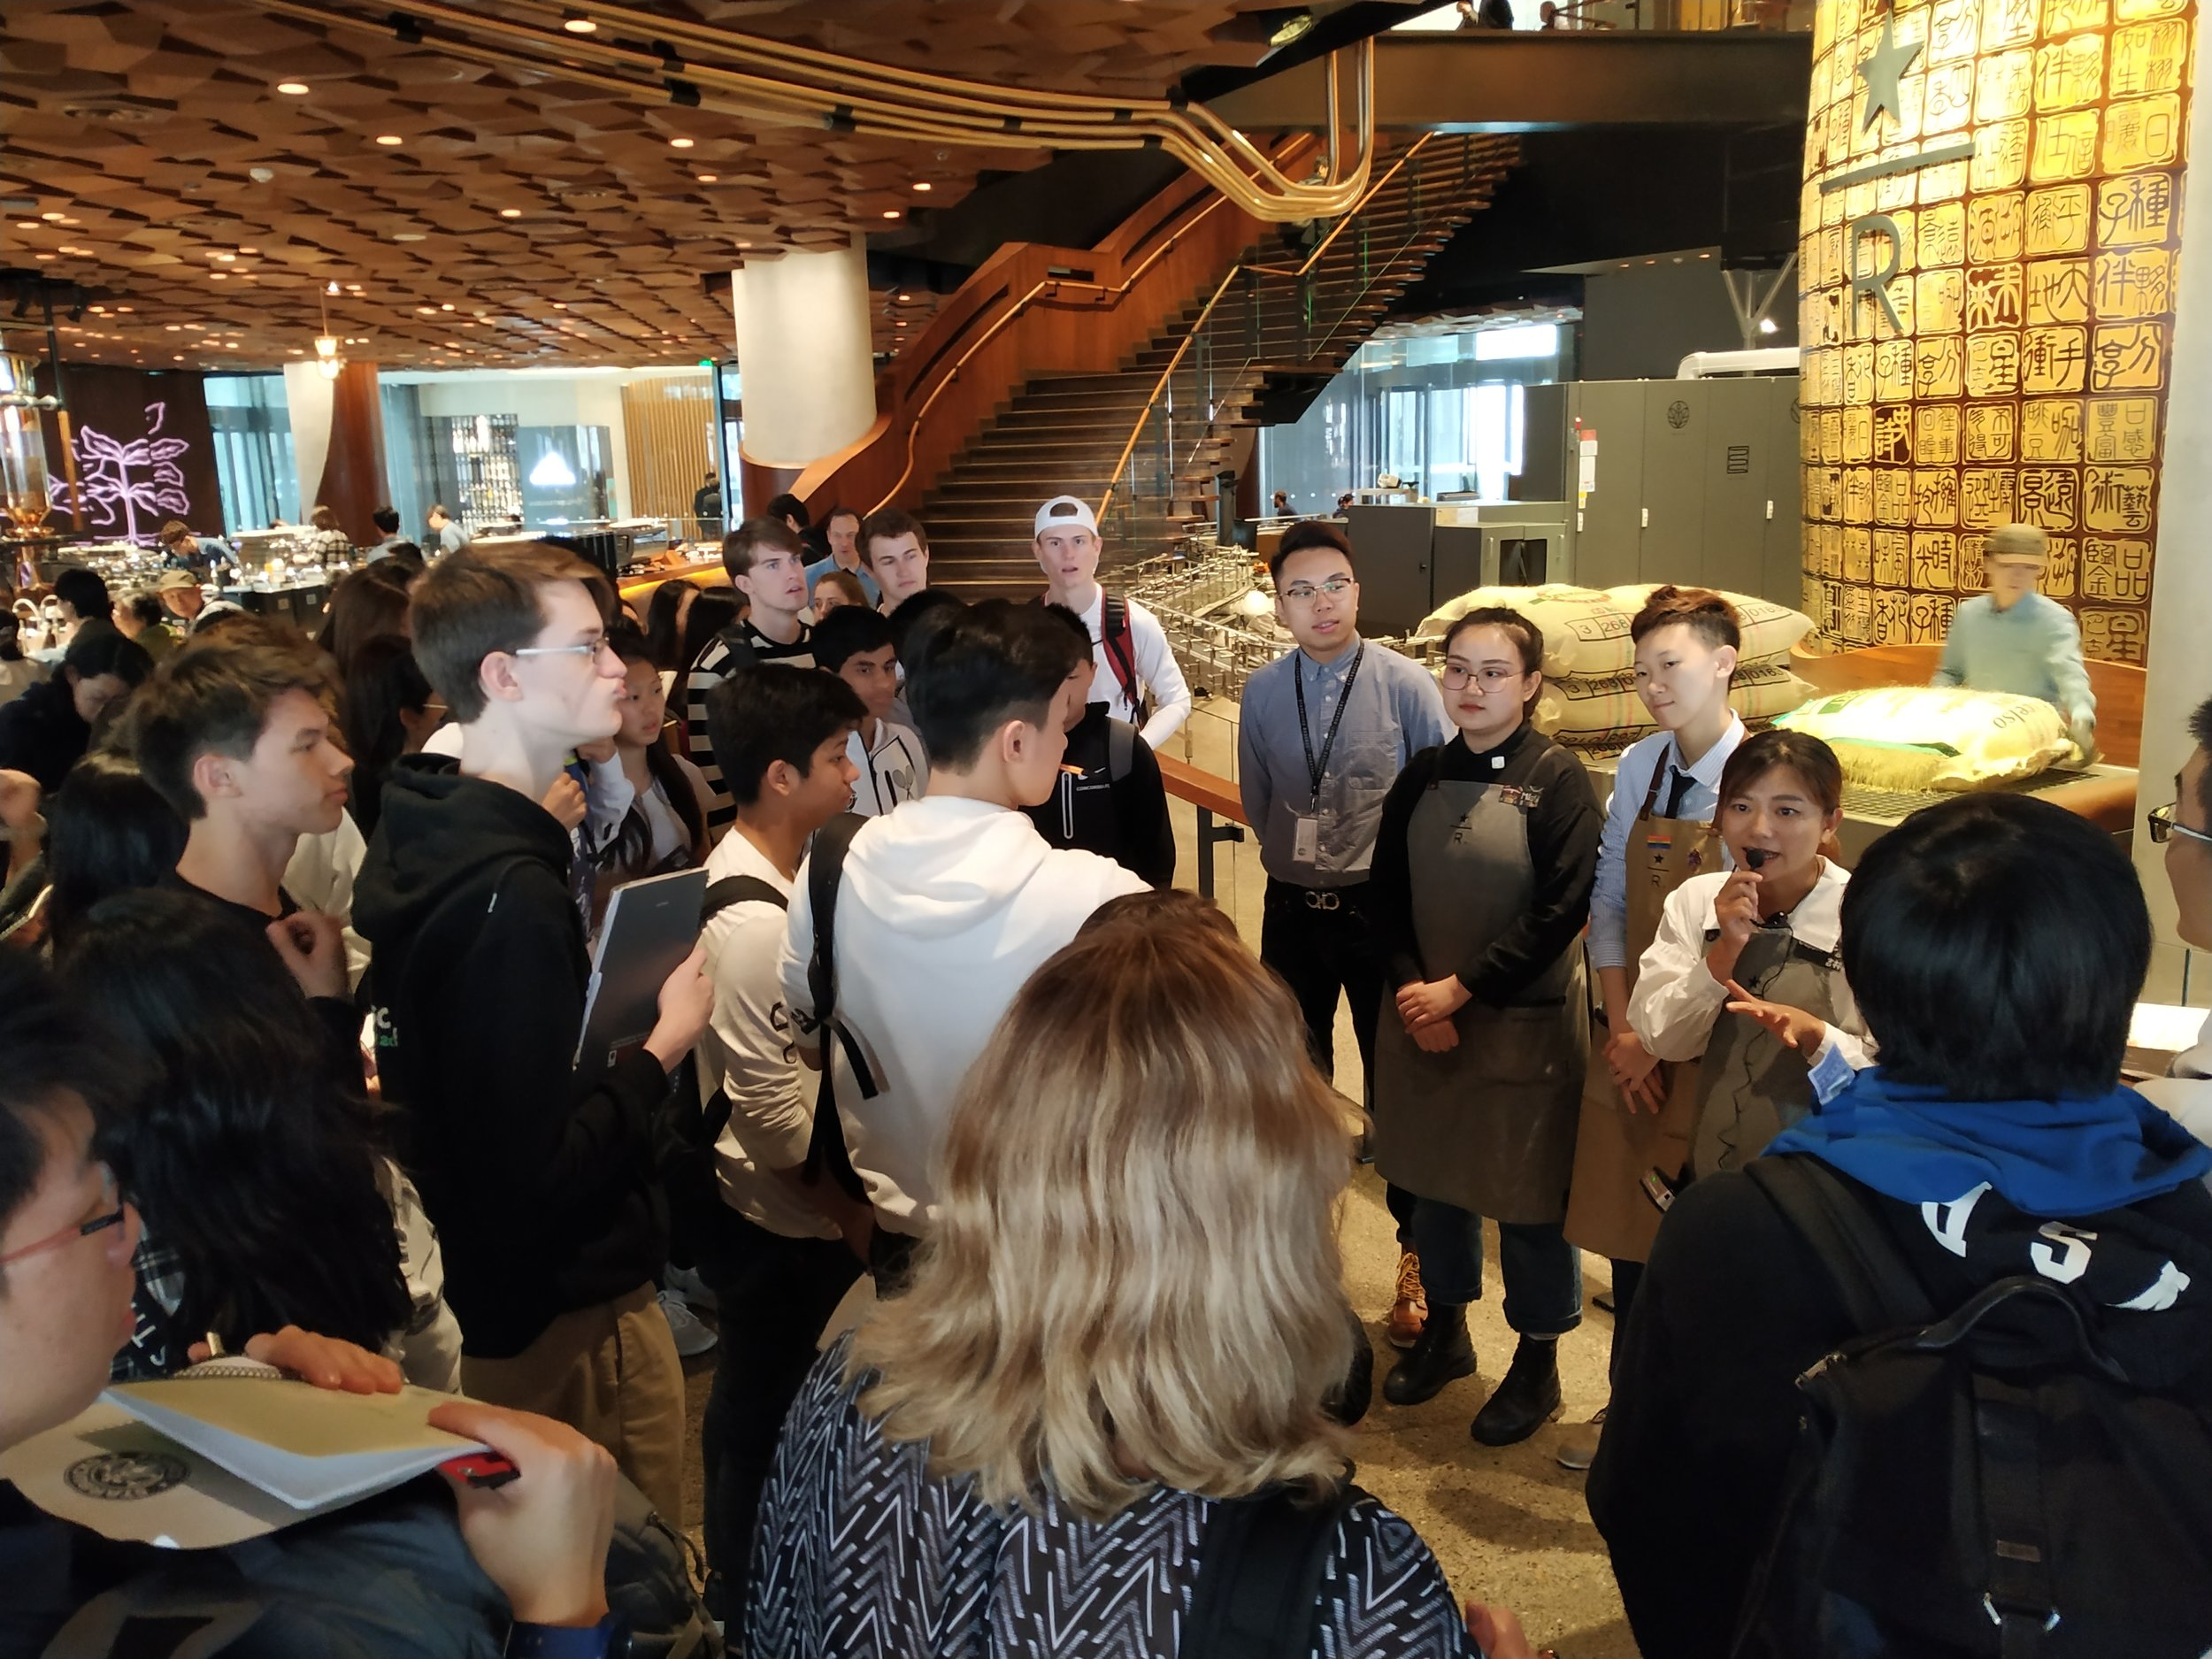 Starting off the AP English field trip at the Starbucks Reserve Roastery with an introduction to four baristas.